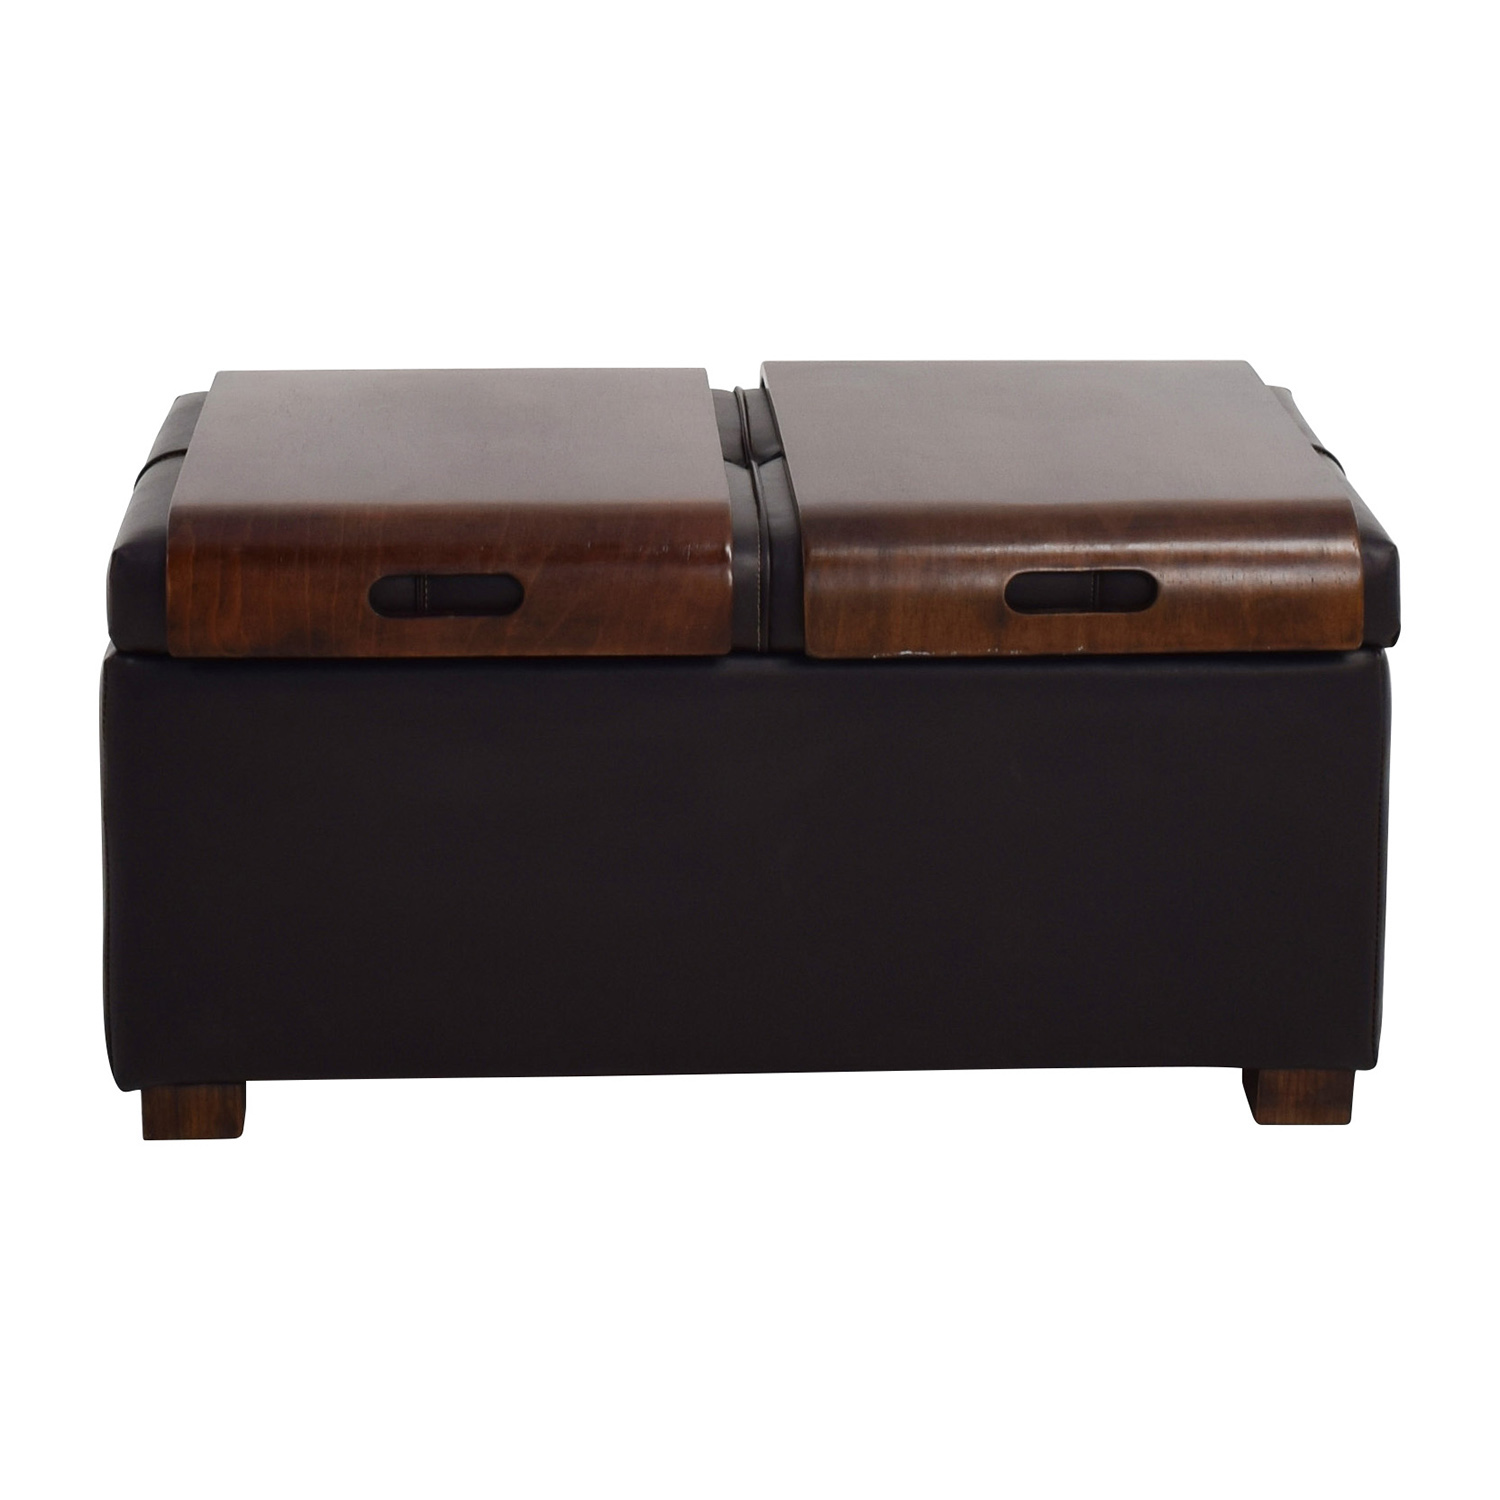 Raymour & Flanigan Storage Ottoman with two trays sale - Ottomans: Used Ottomans For Sale